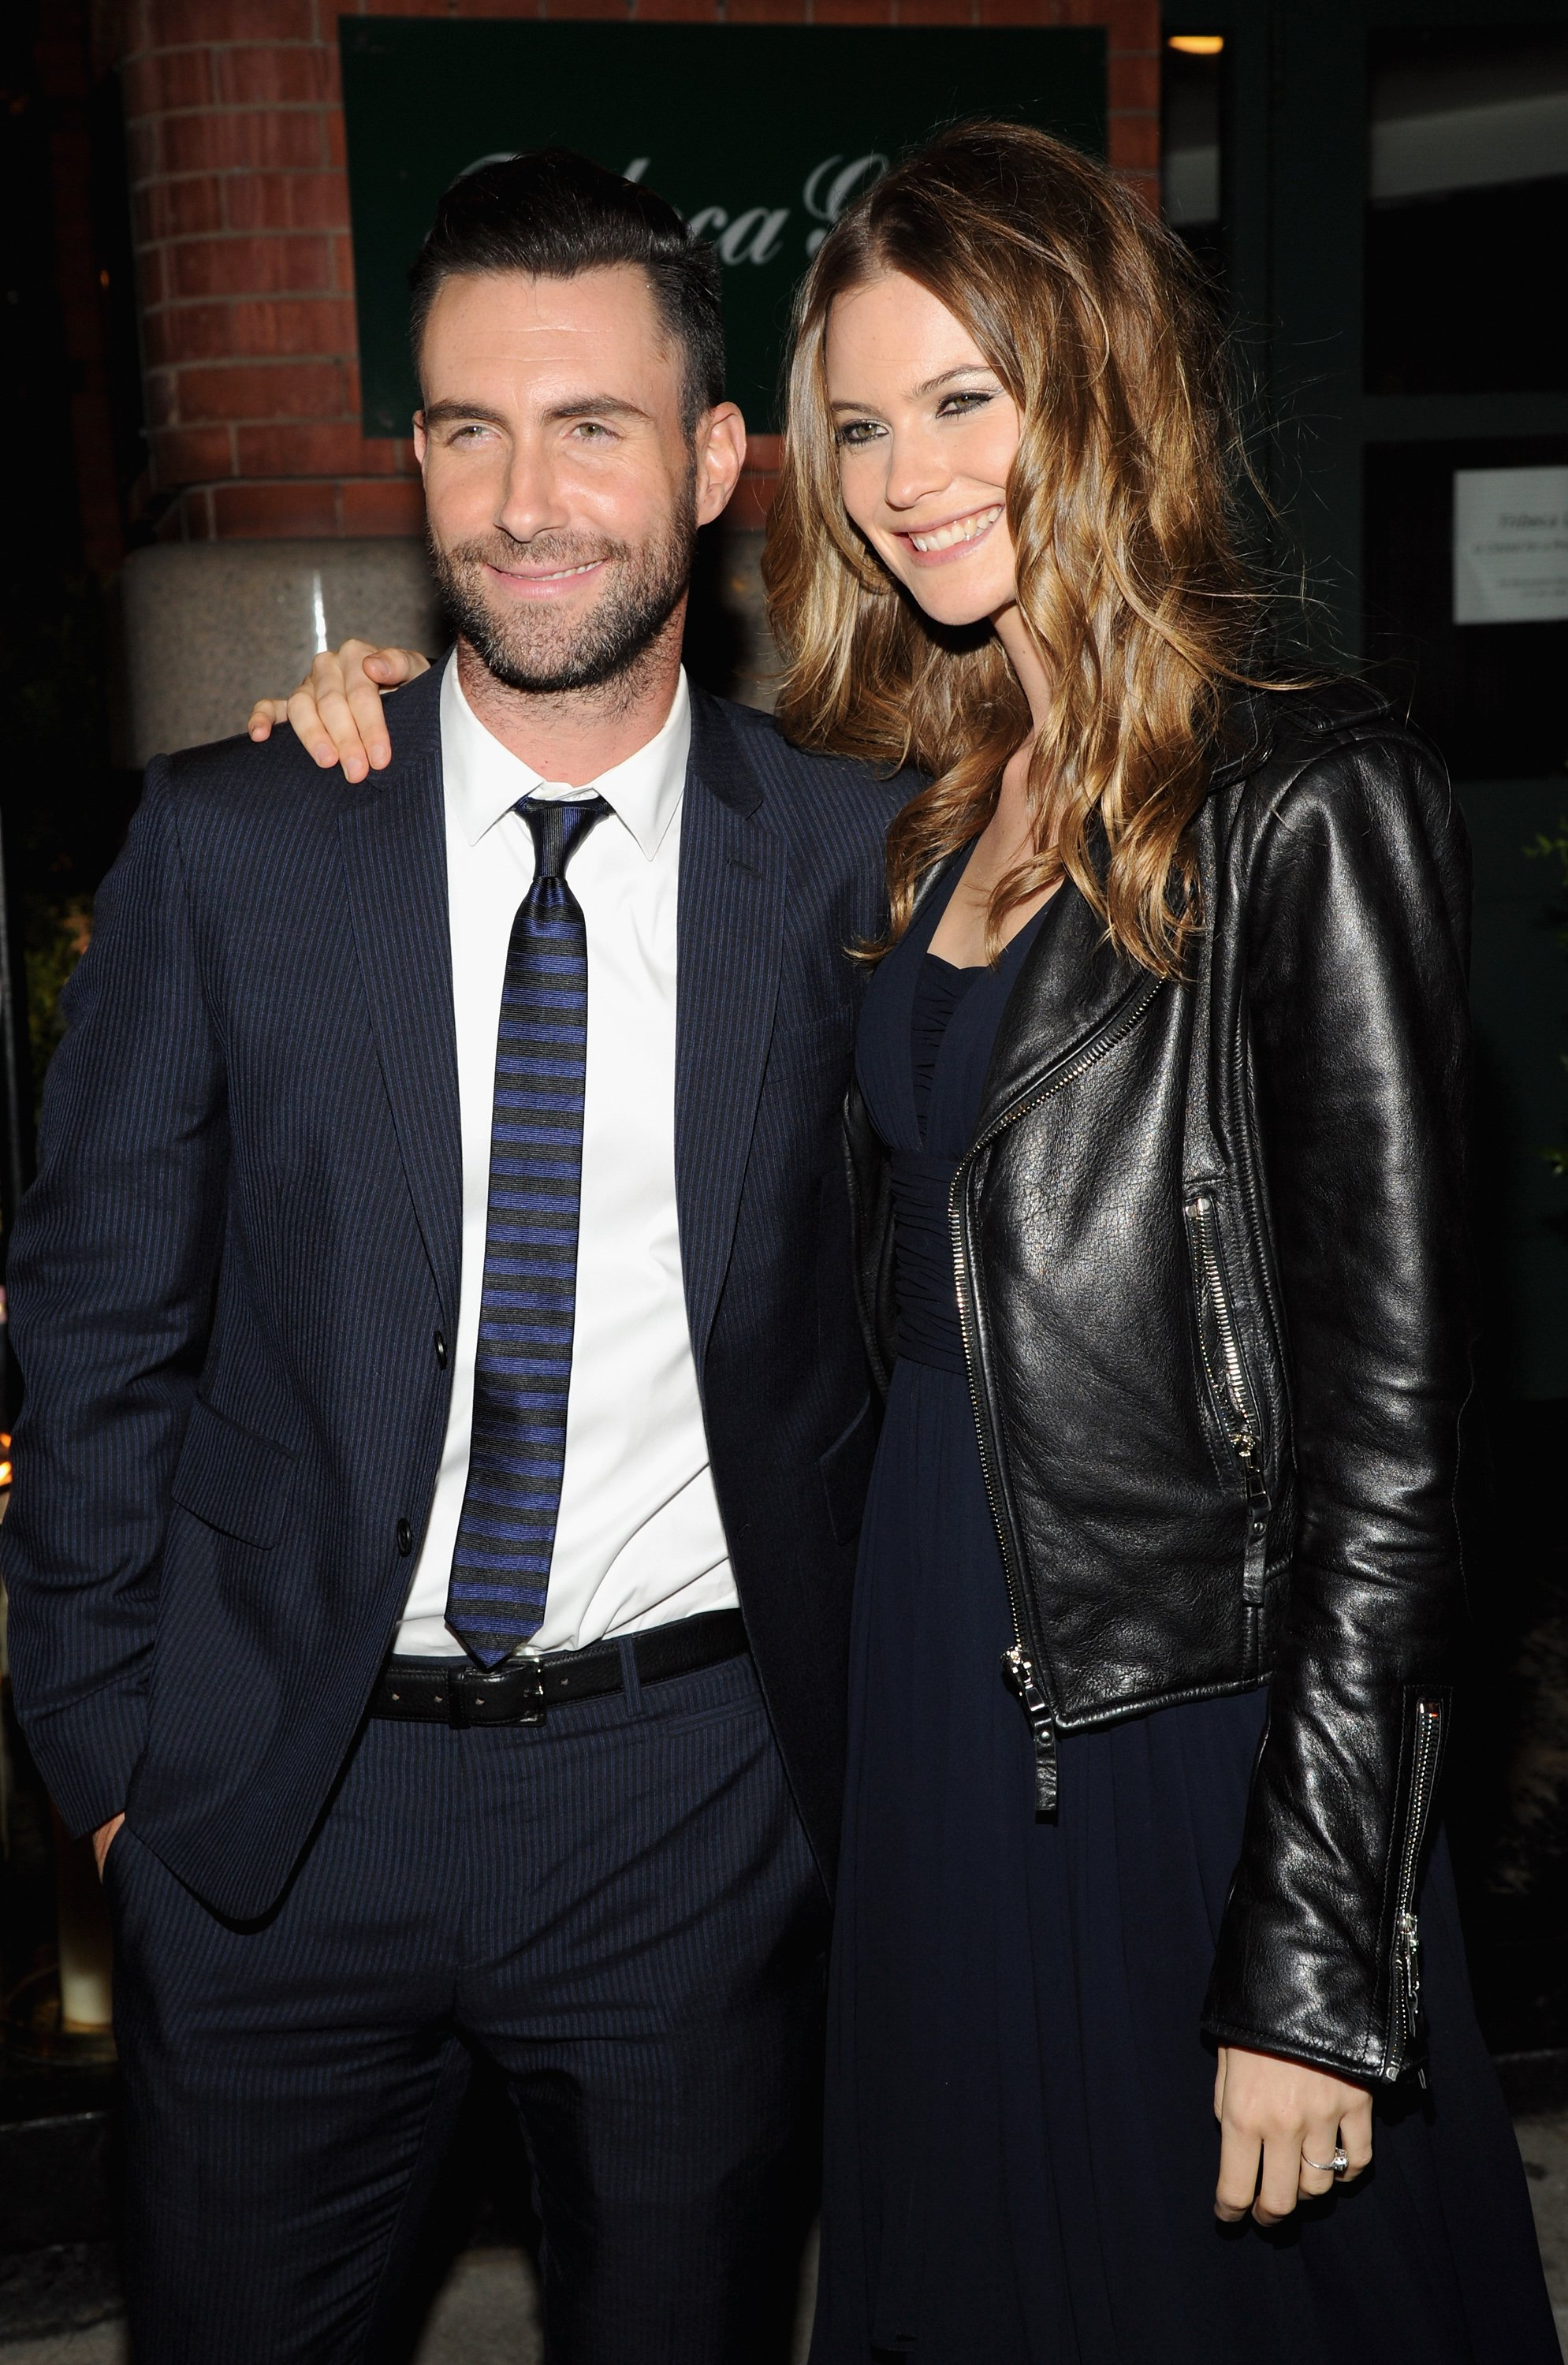 Adam Levine and Behati Prinsloo at the CHANEL Dinner in honor of the 2014 Tribeca Film Festival on April 26, 2014   Photo: GettyImages